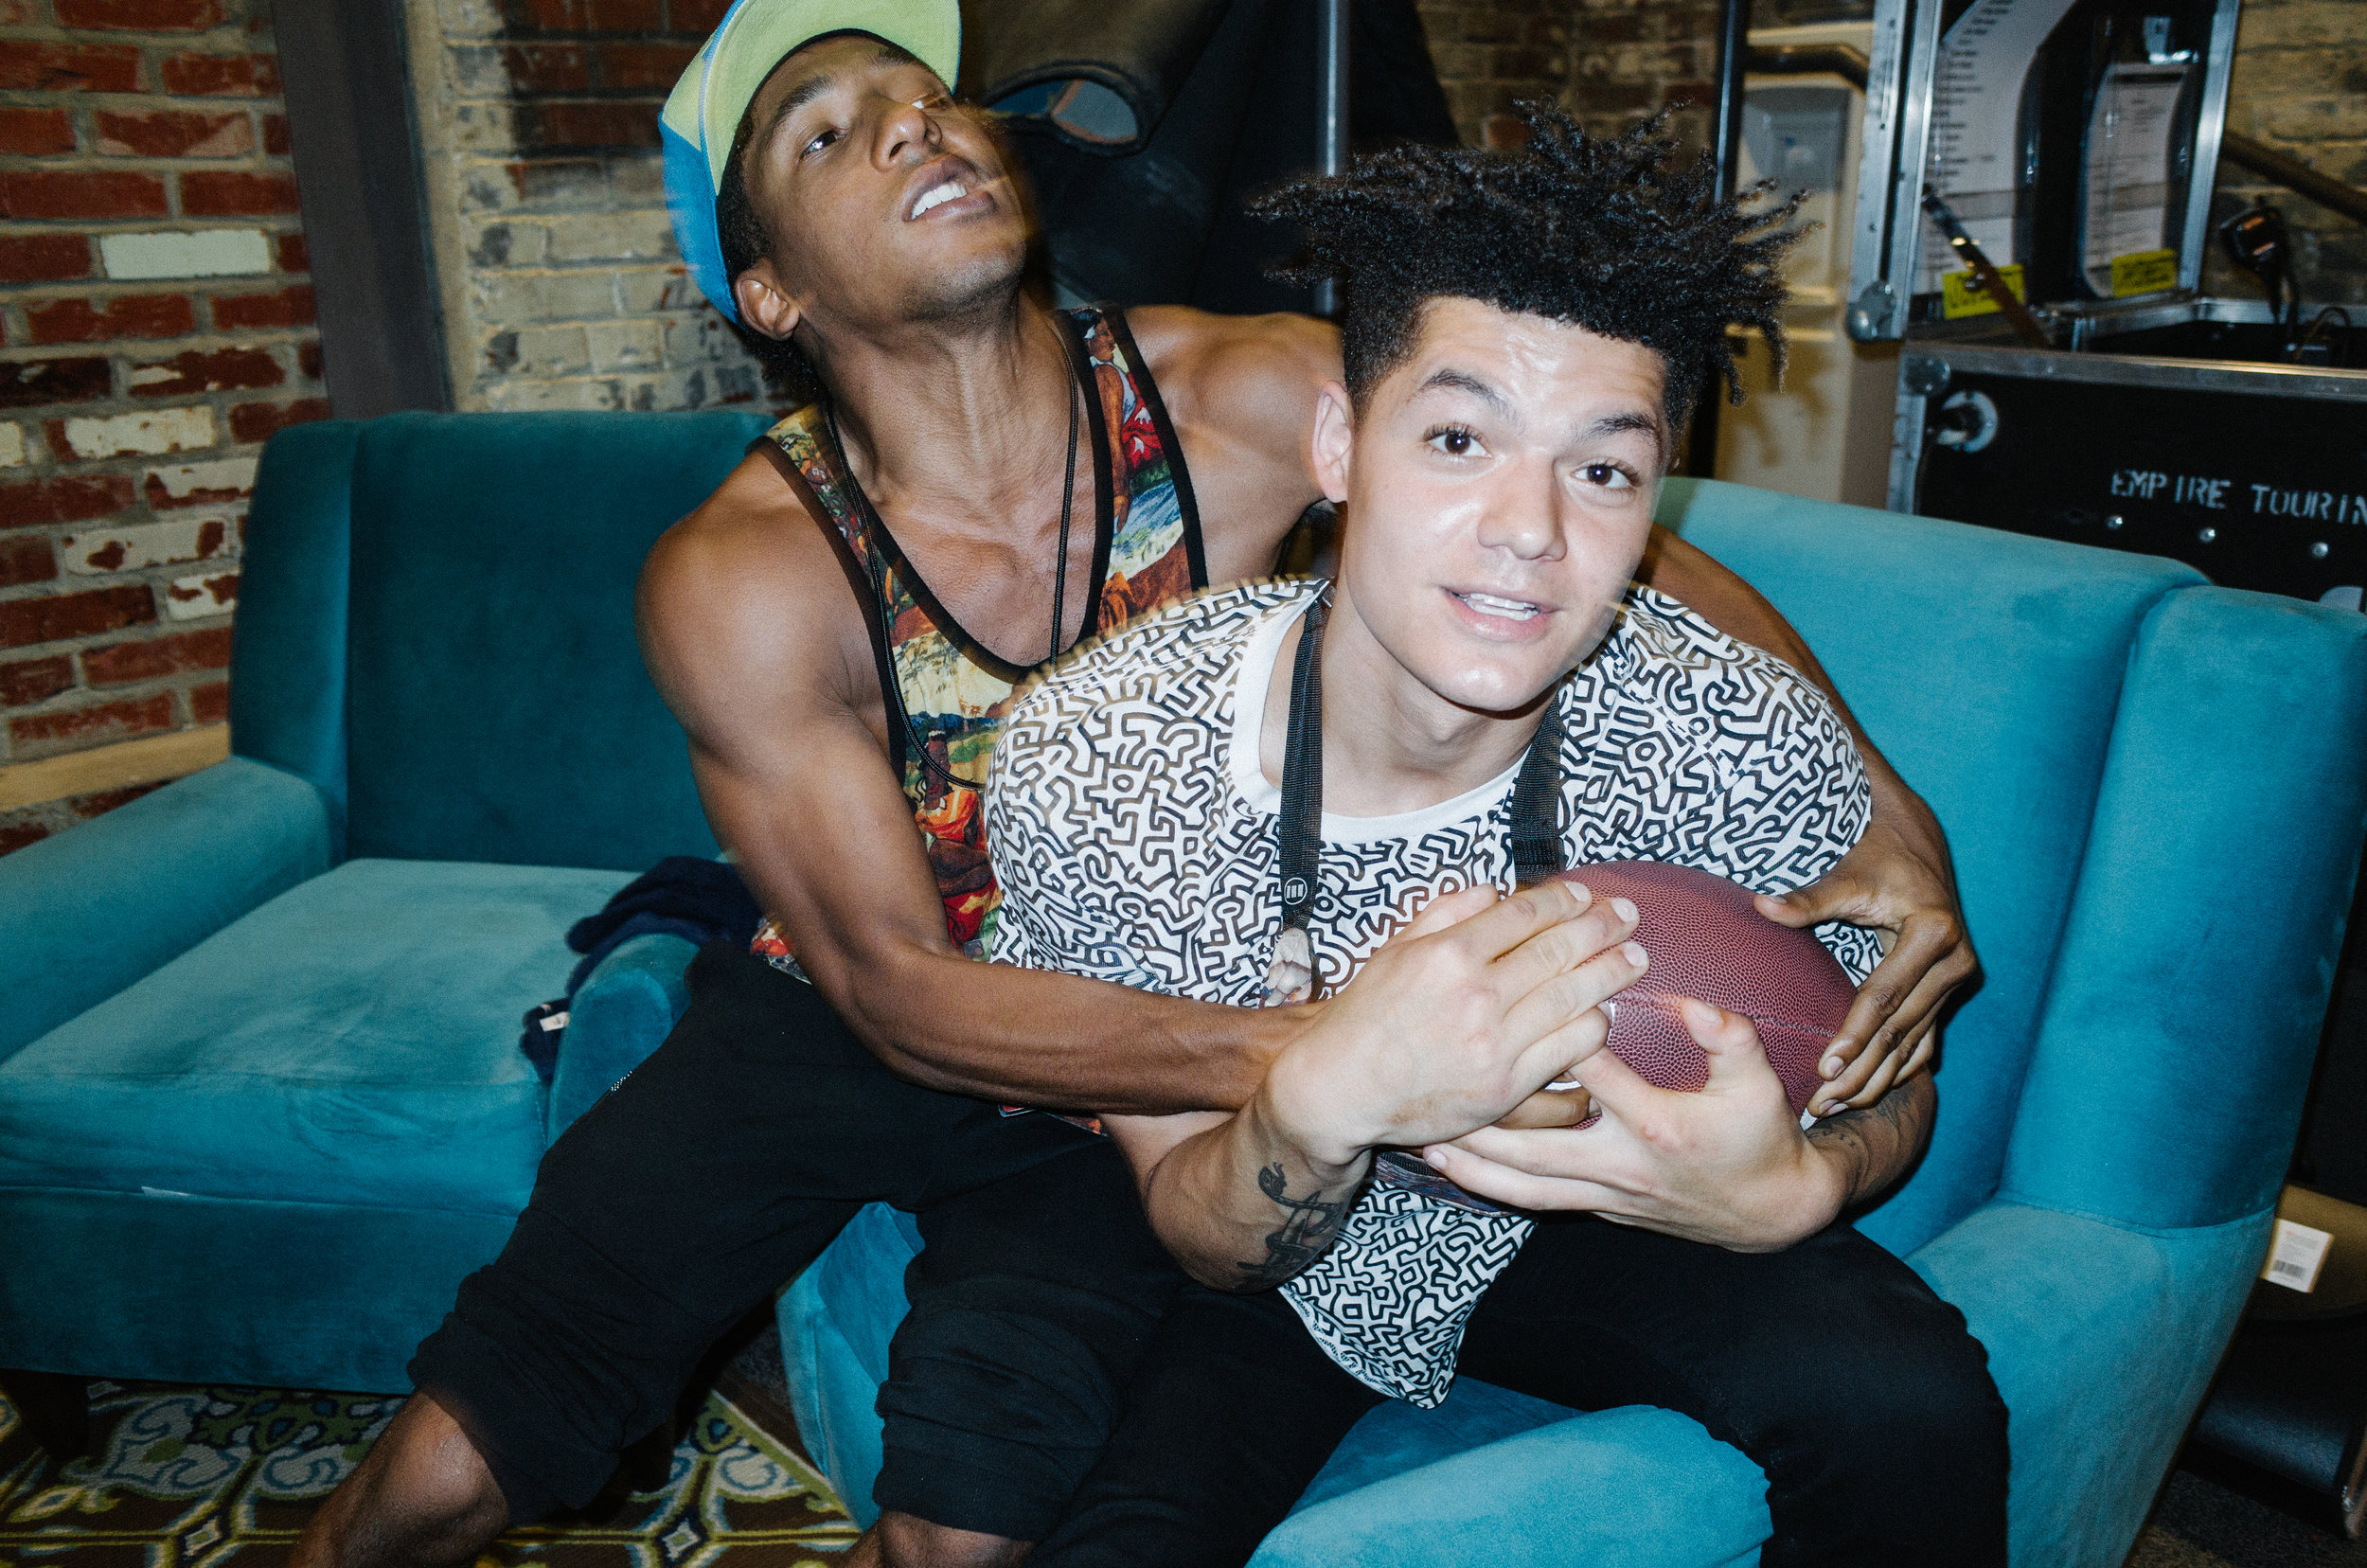 Damian and Alex fighting over a football backstage in Charlotte